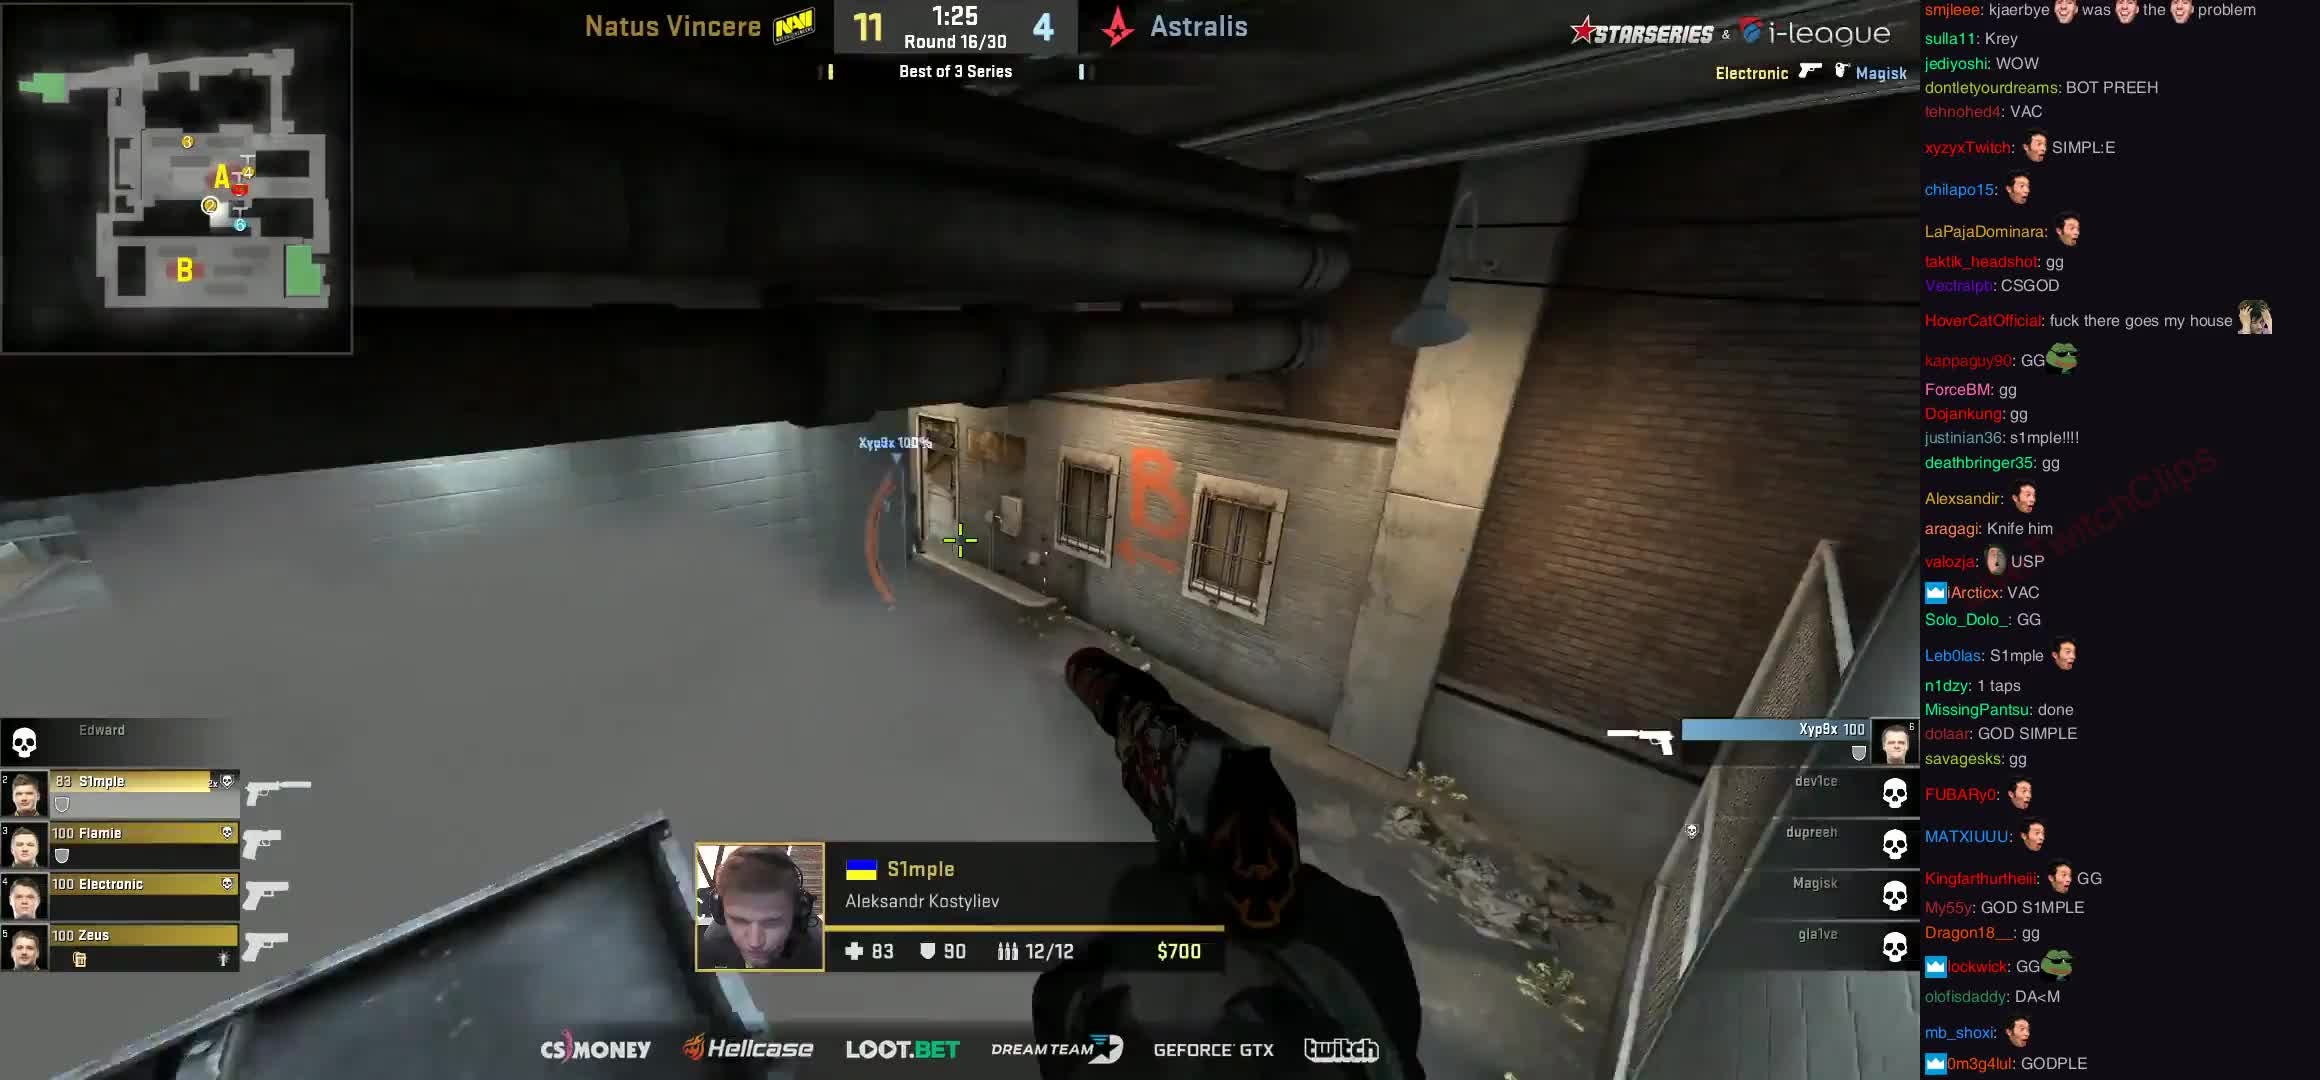 https://www.reddit.com/r/GlobalOffensive/comments/7zrhz2/s1mple_is_happy/ GIFs